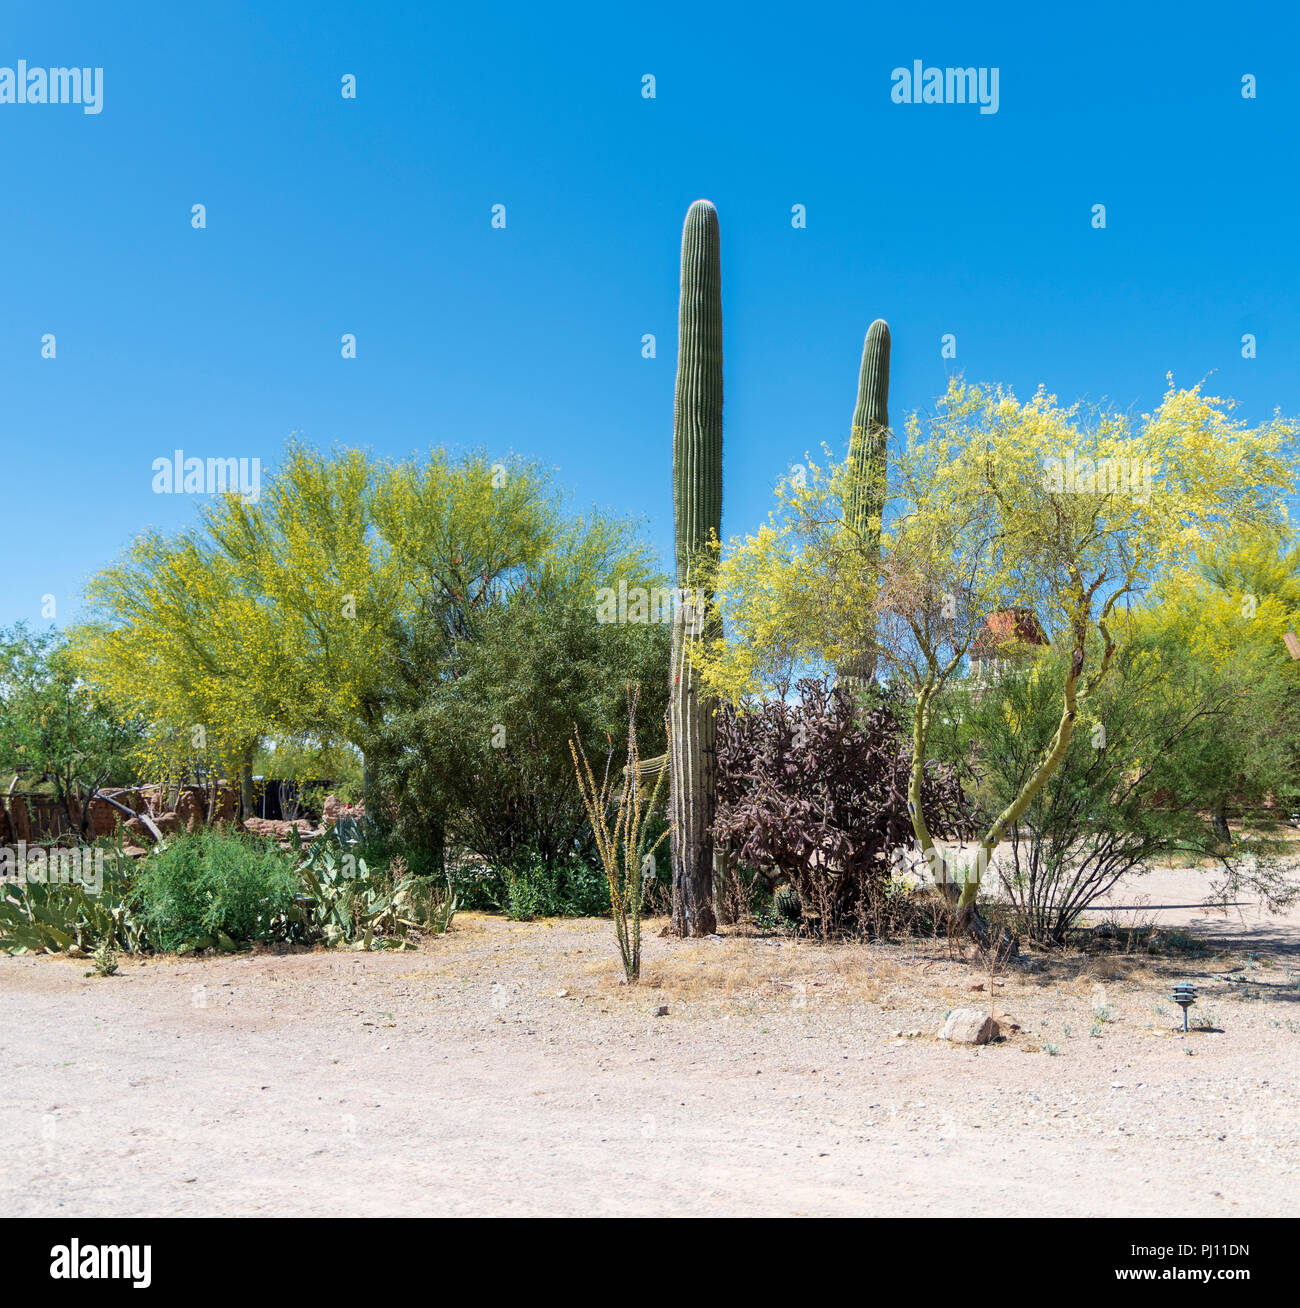 Springtime In The Sonoran Desert With Saguaro Cactus Trees In Bloom